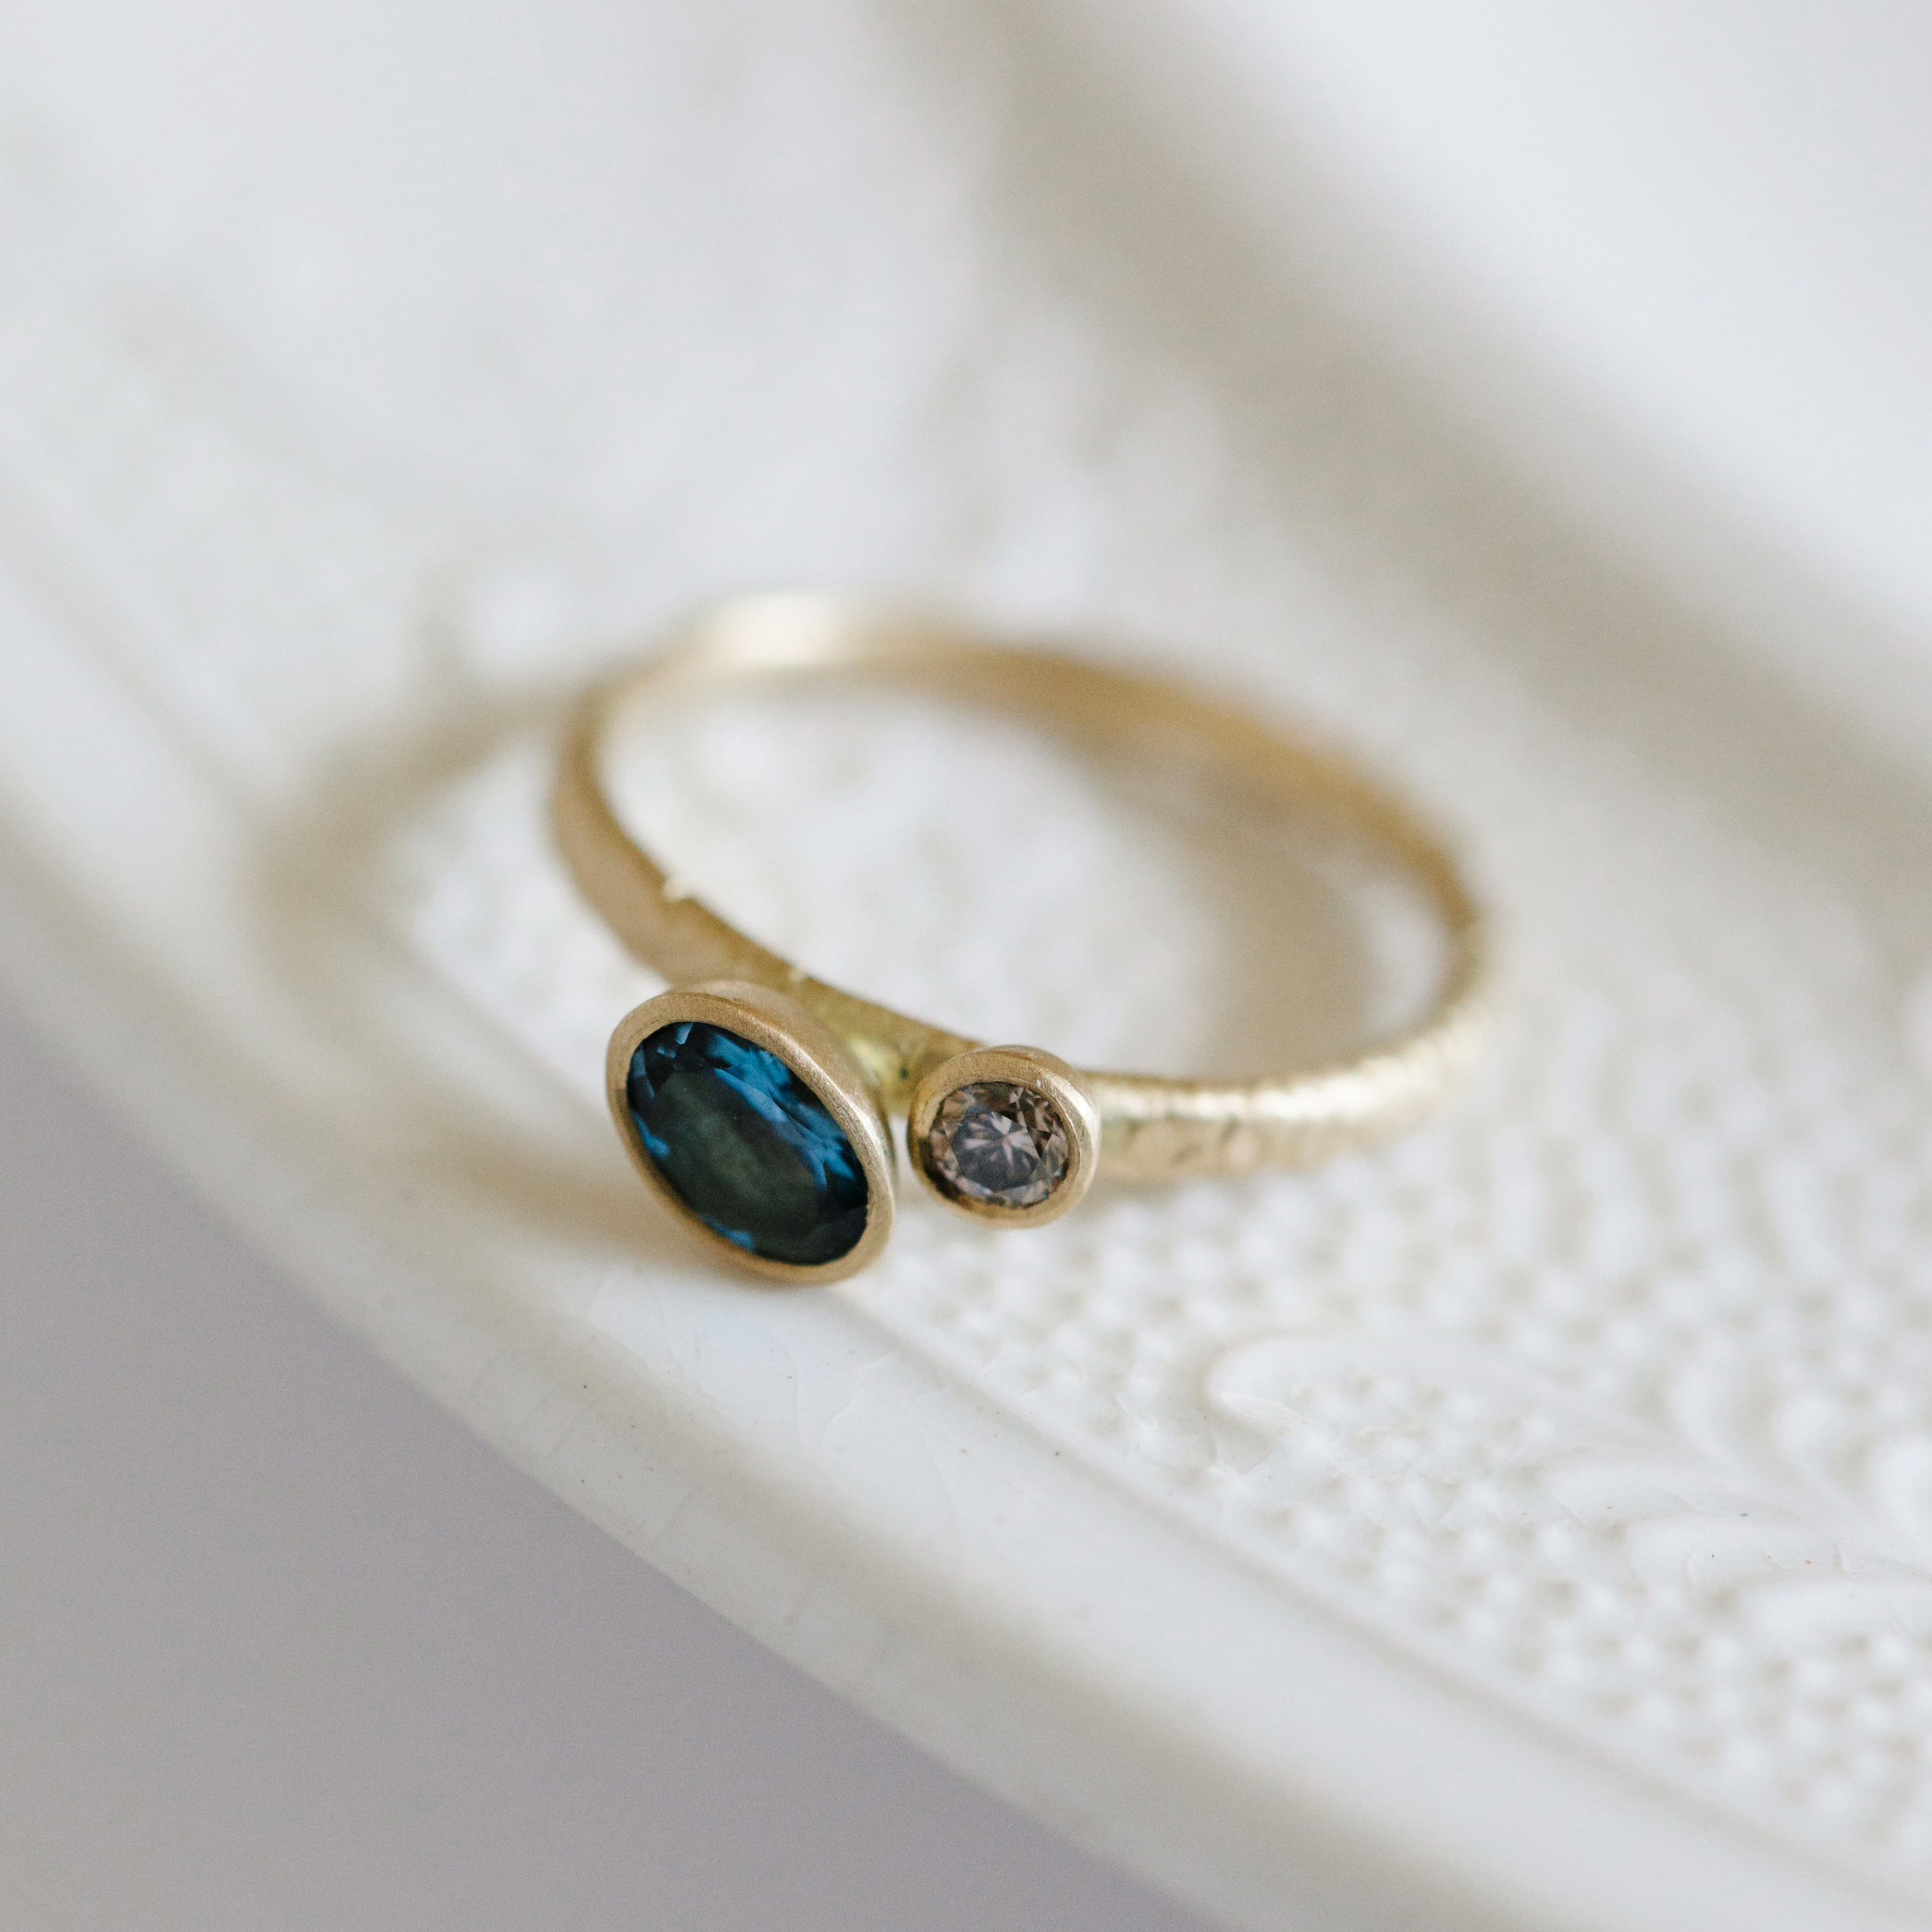 alison macleod 11 Catkin off-set aquamarine ring with champagne diamond main.jpg